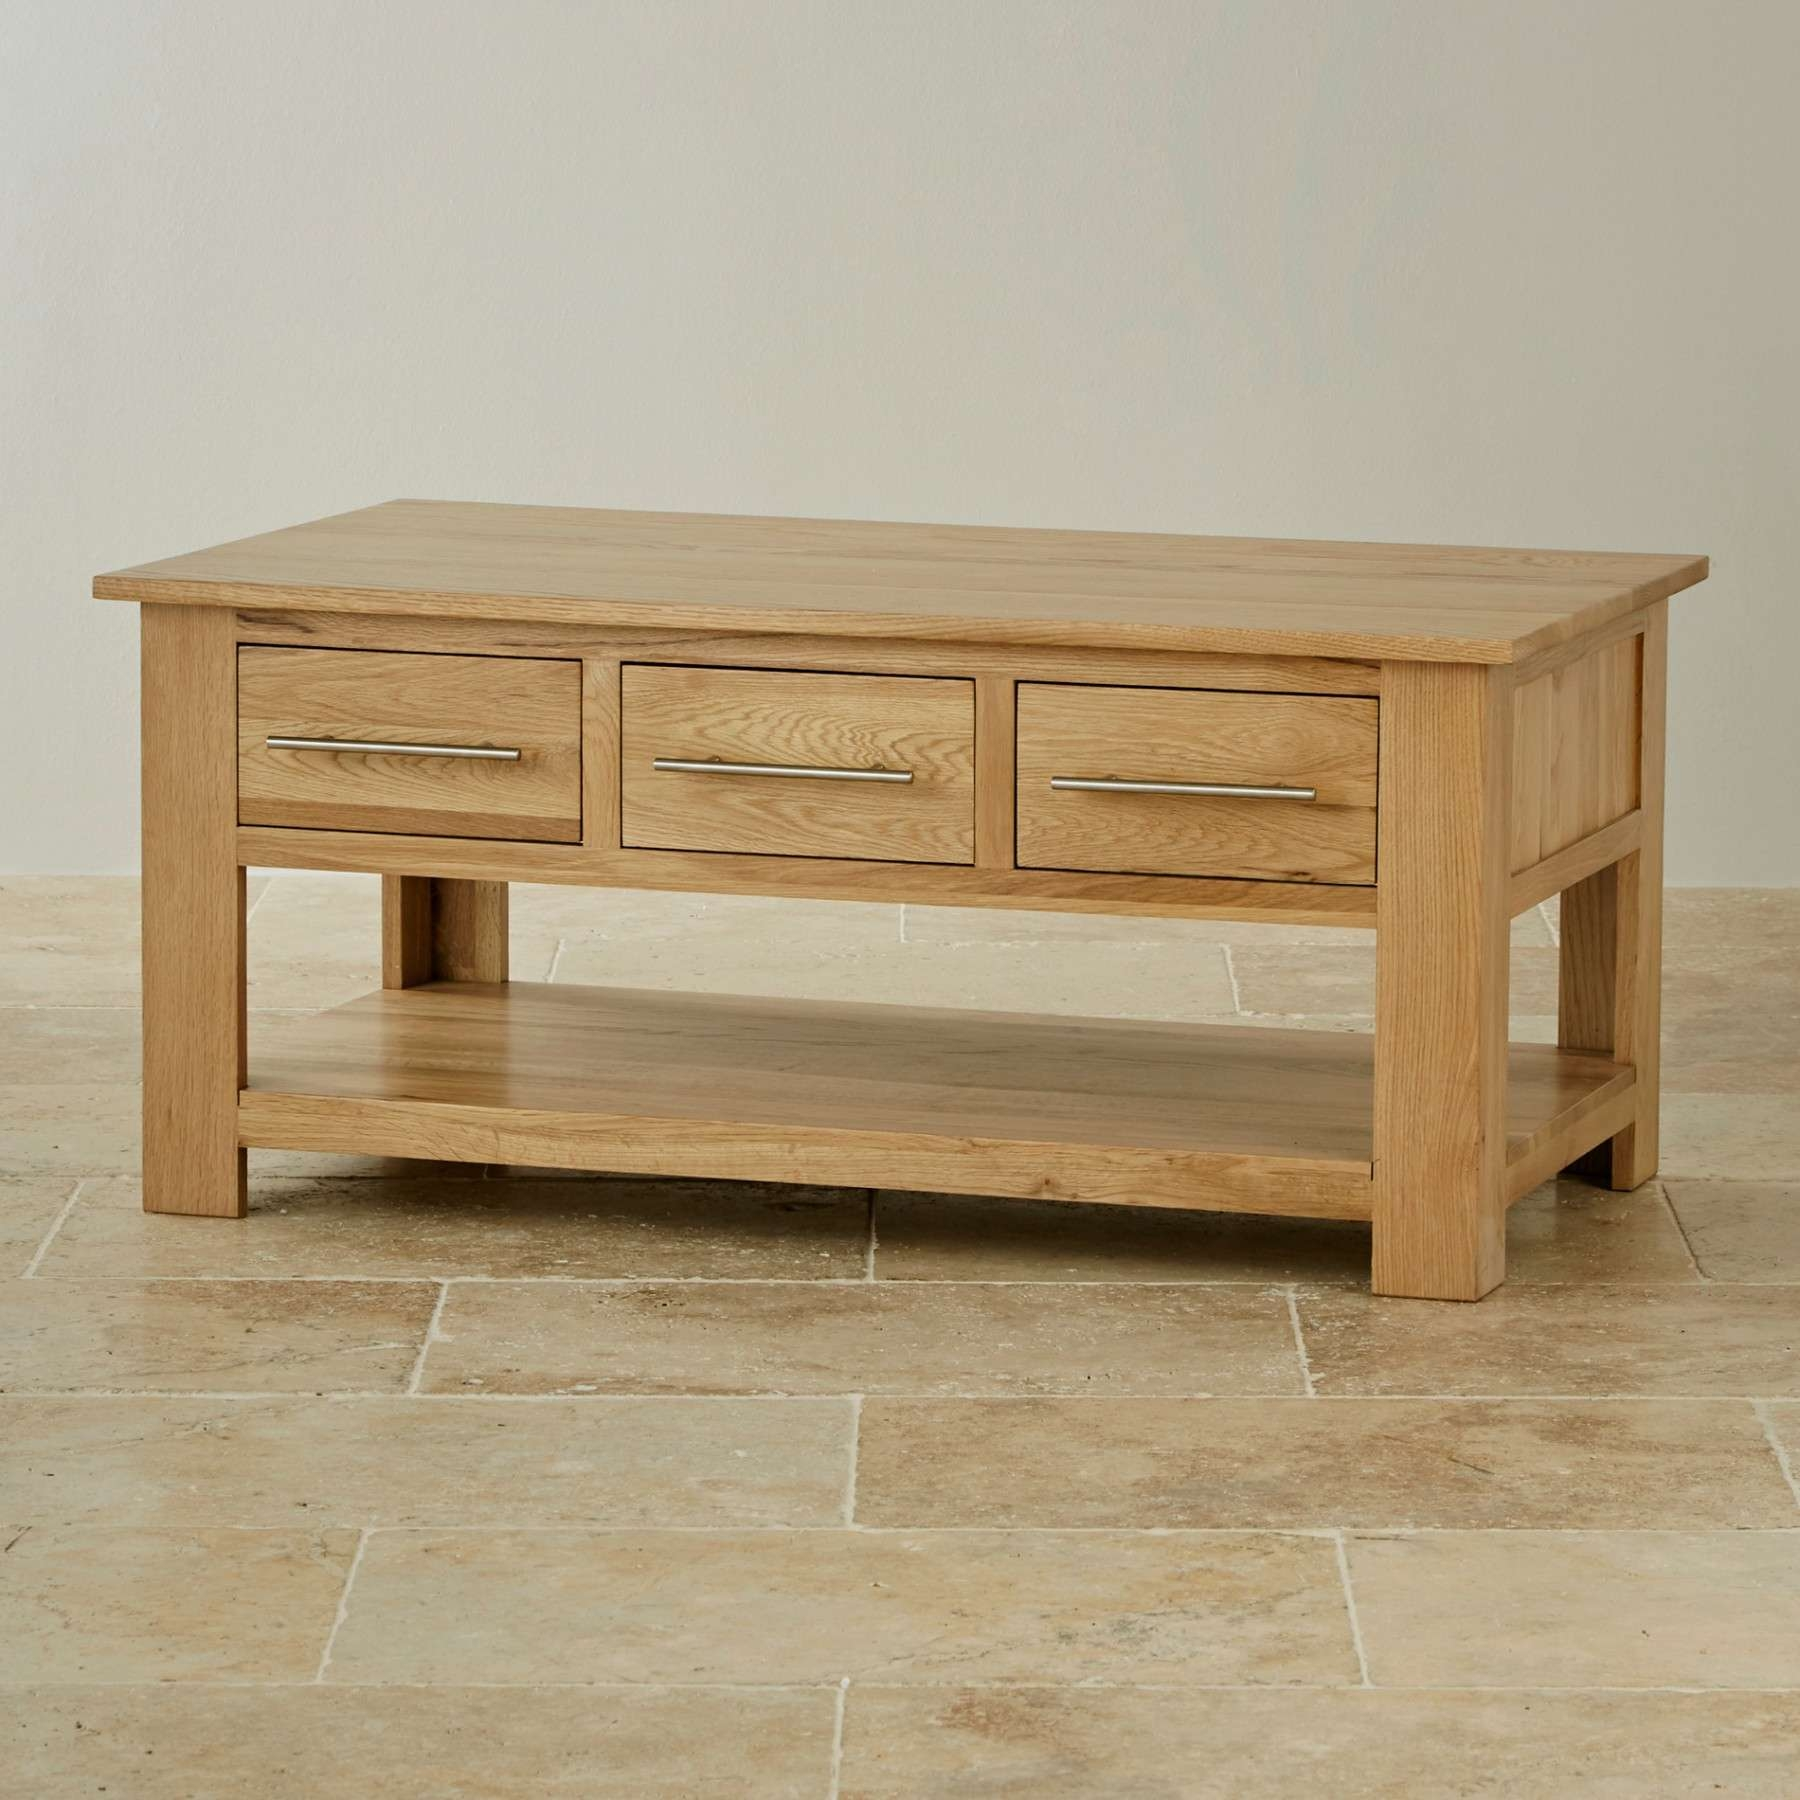 Oak Furniture Land With Best And Newest Solid Oak Coffee Tables (Gallery 8 of 20)